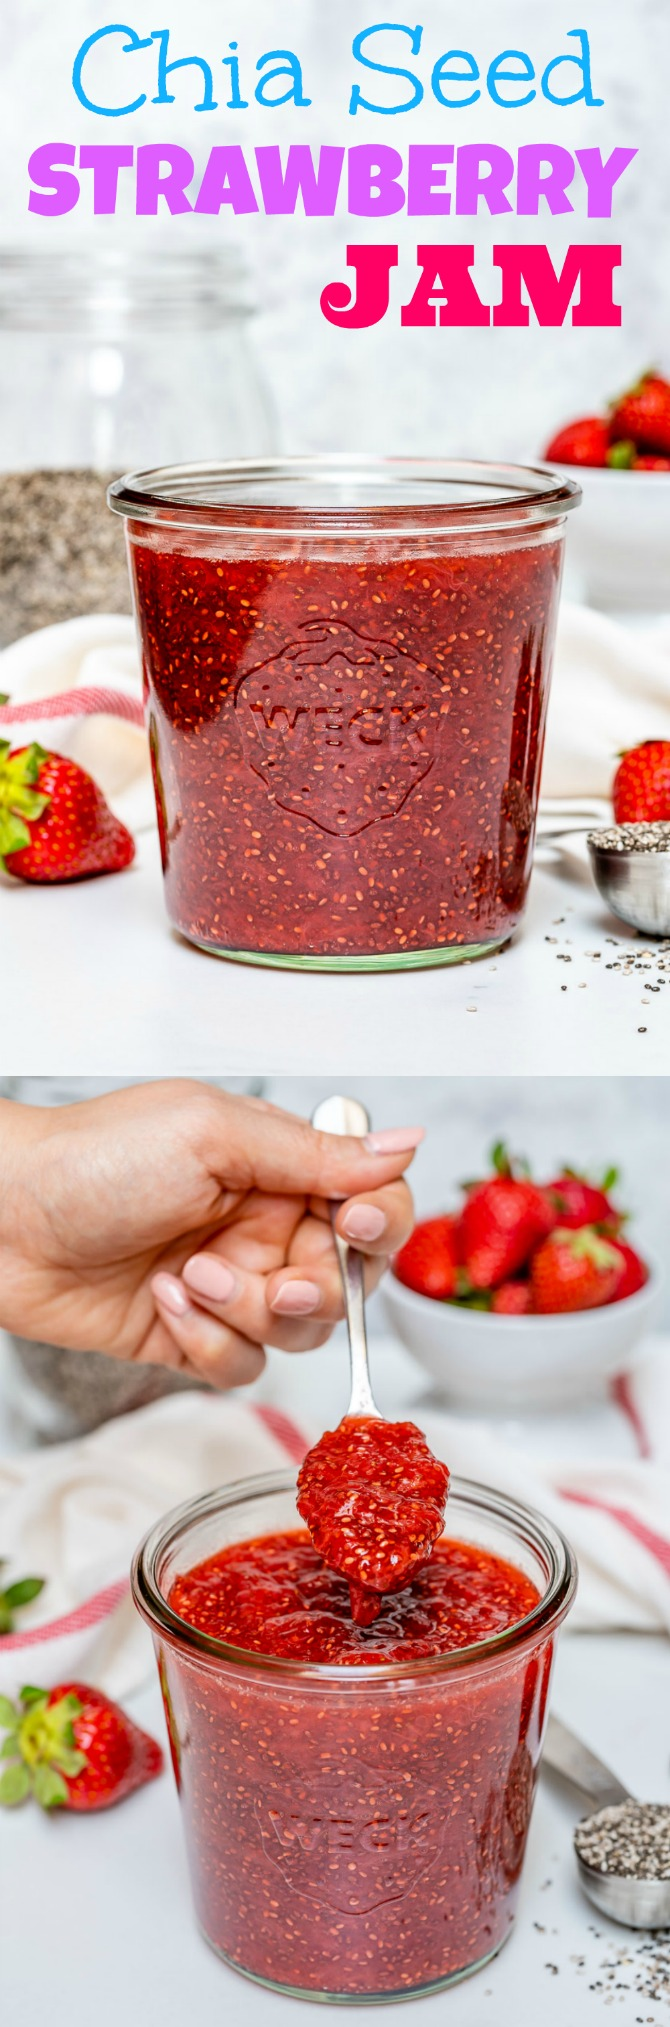 Chia Seed Strawberry Jam Breakfast Snack